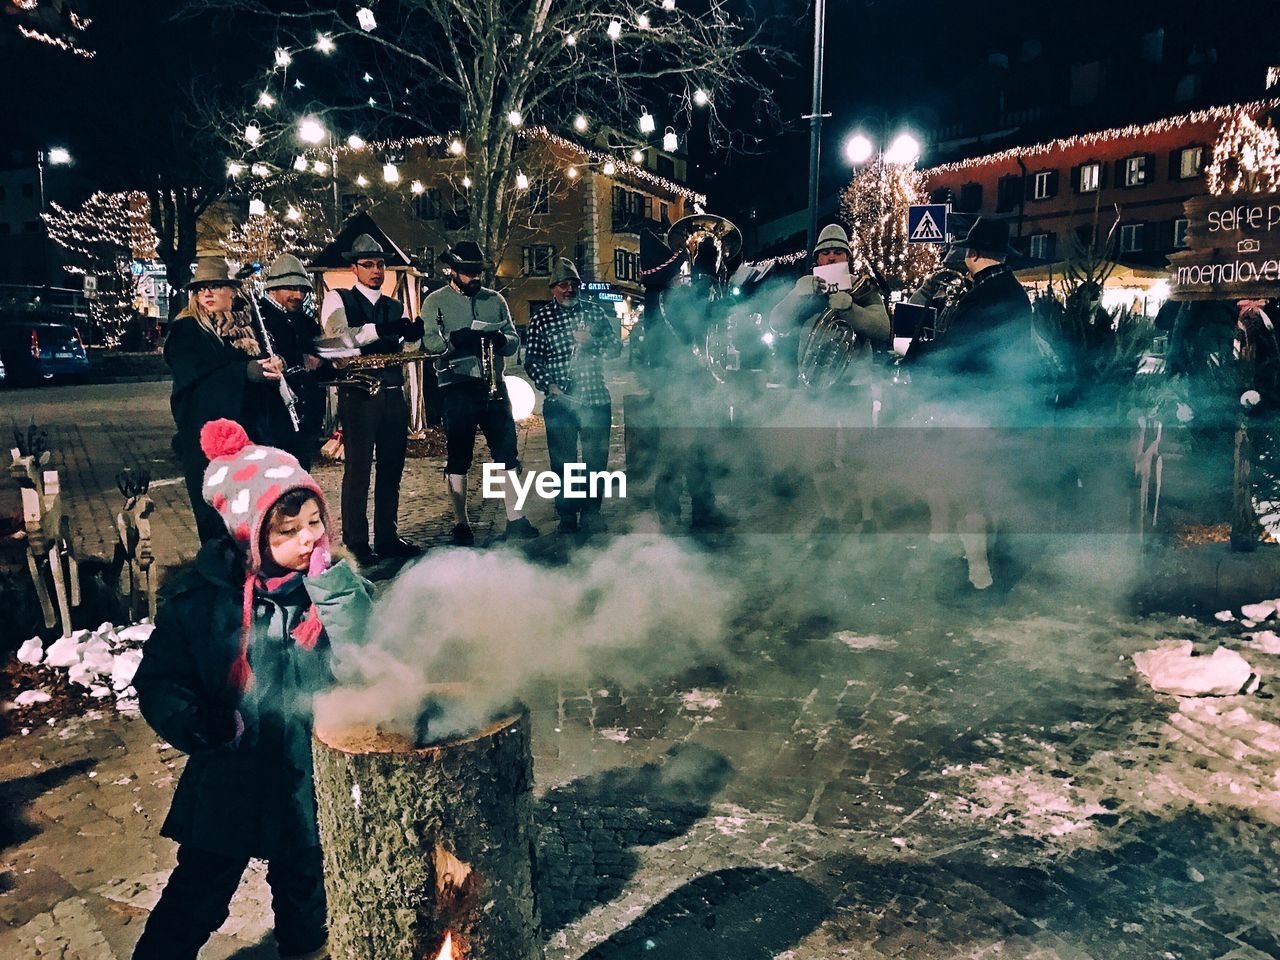 smoke - physical structure, night, real people, leisure activity, risk, lifestyles, winter, celebration, outdoors, firework - man made object, enjoyment, firework display, sparkler, bad habit, snow, cold temperature, building exterior, city, warm clothing, one person, architecture, men, young adult, riot, people